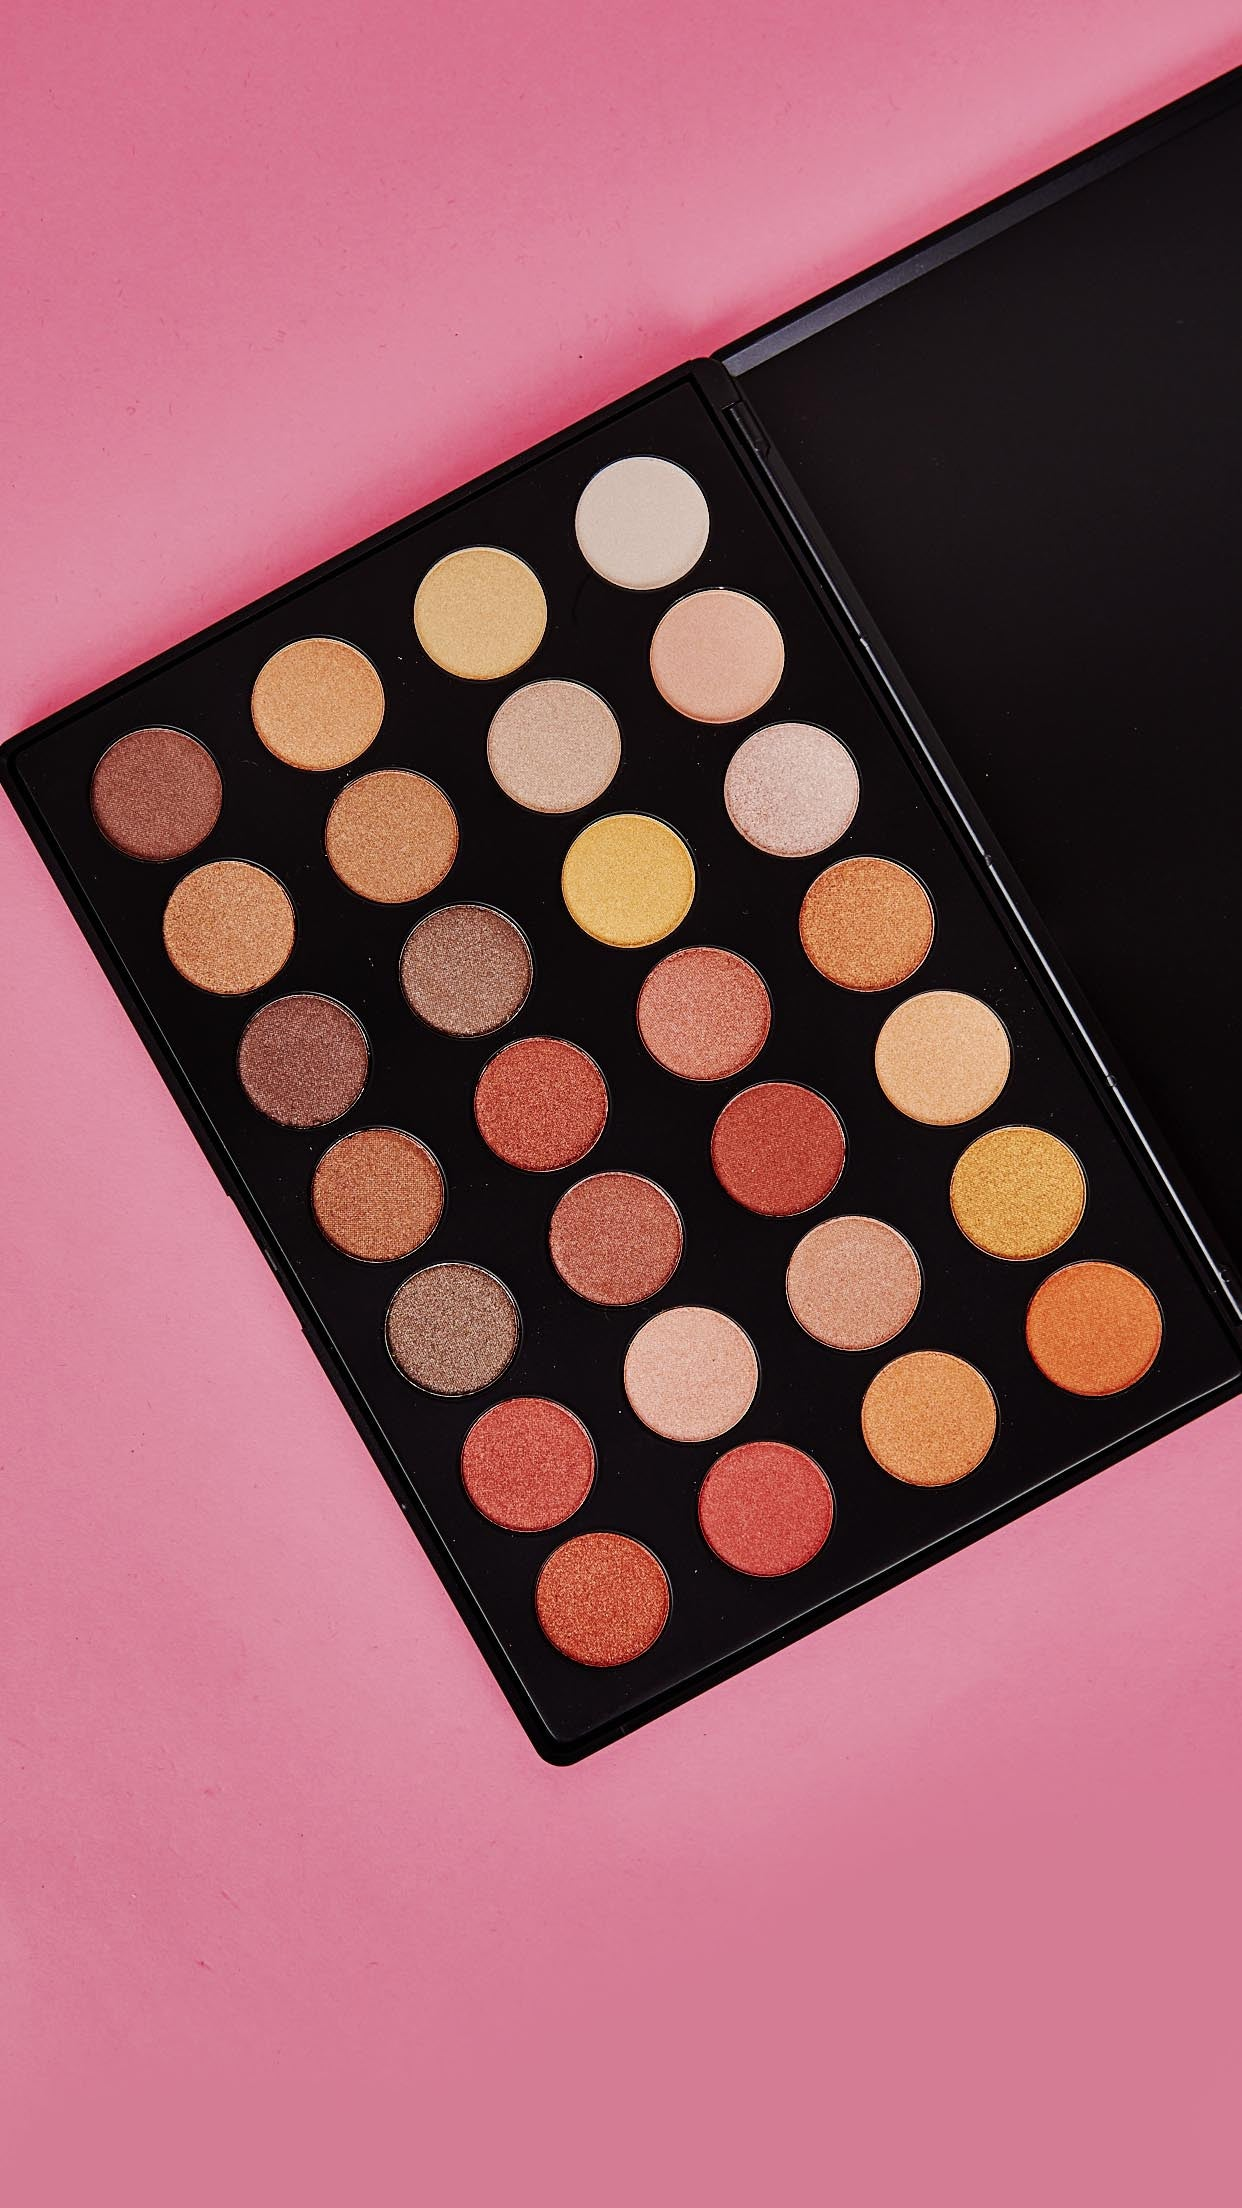 No Regrets! 28 Excuses Shimmer Eyeshadow Palette